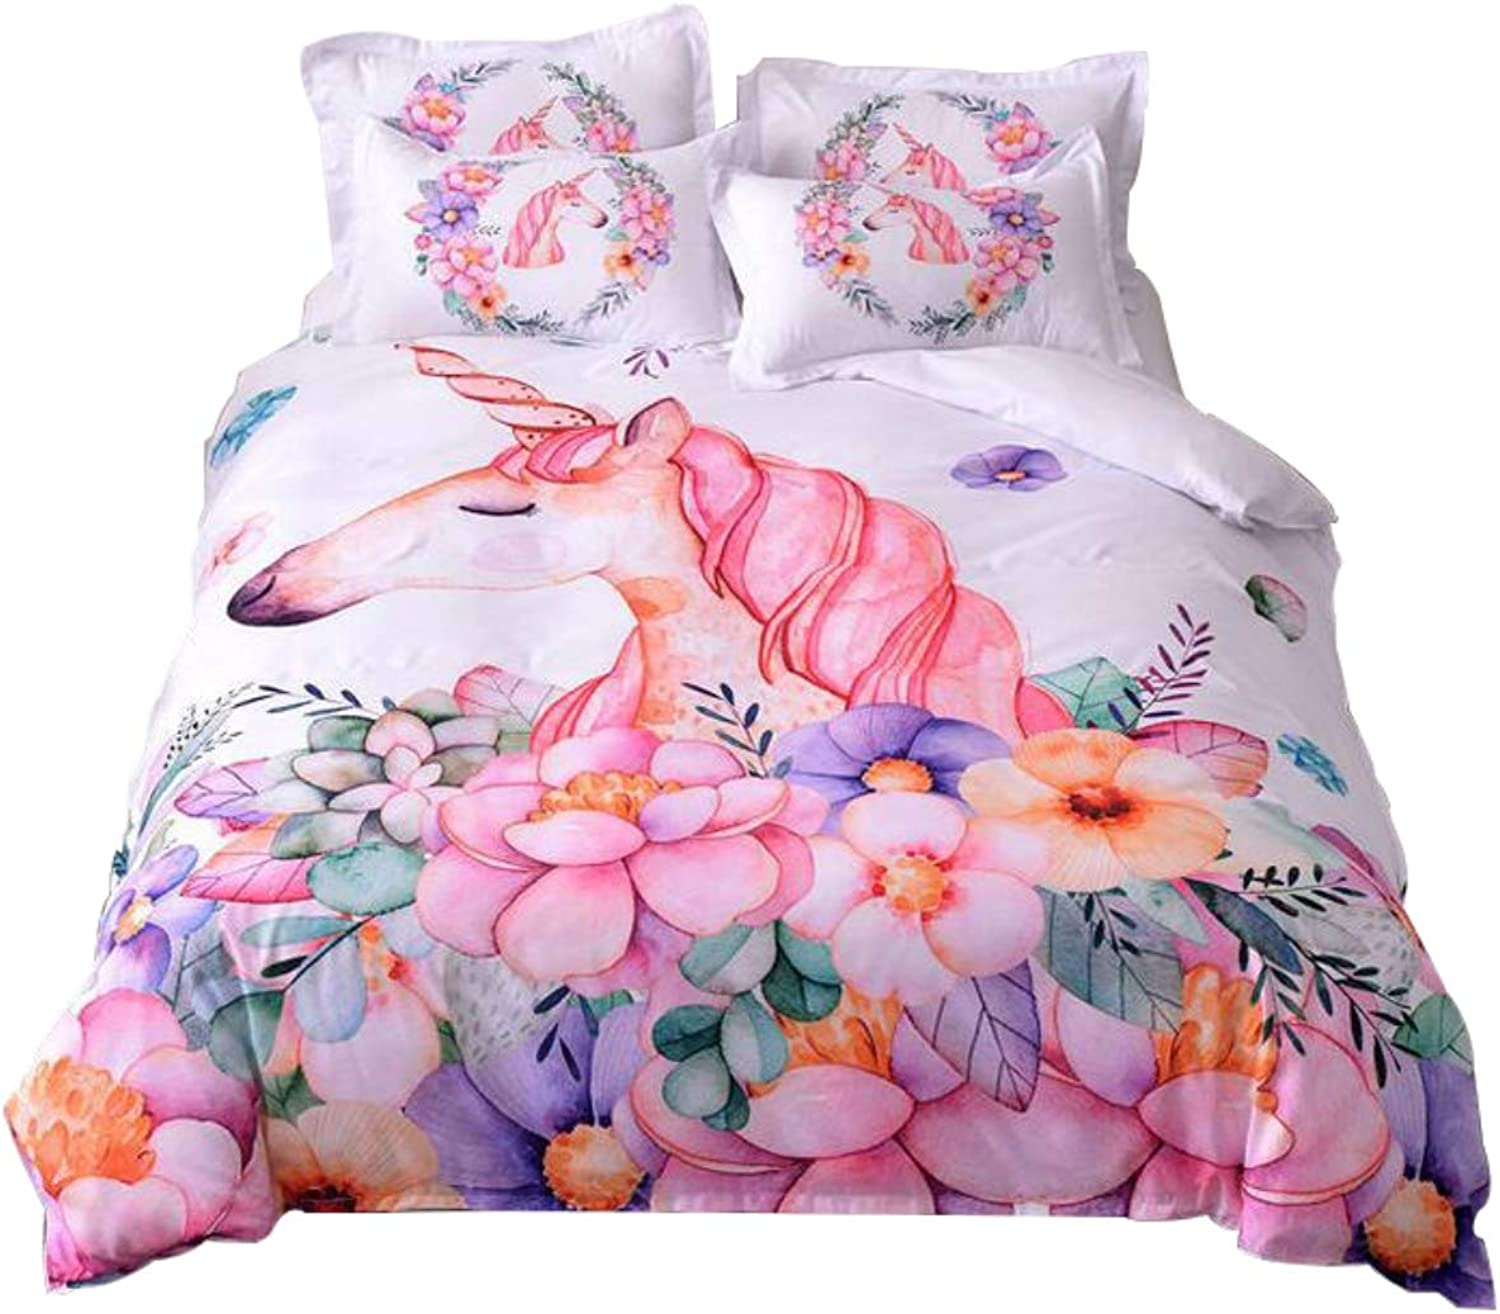 WINLIFE Watercolor Unicorn Print Duvet Cover for Girls Pink Floral Bed Cover Set King A